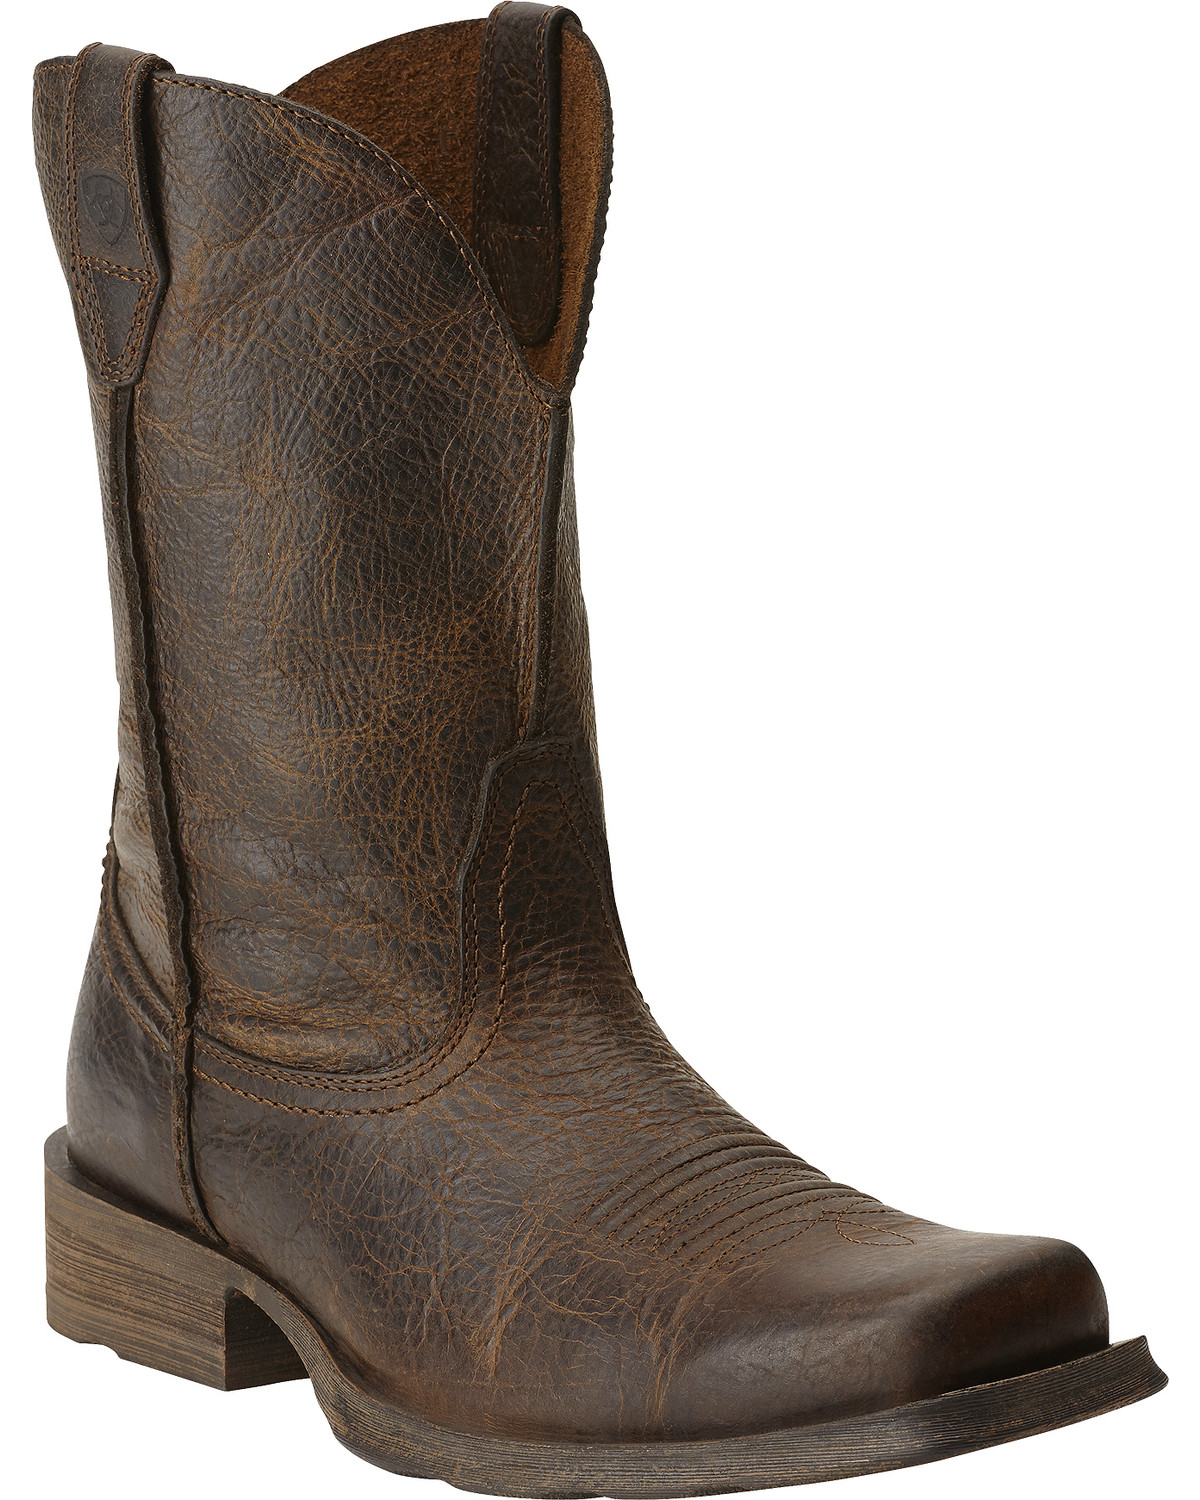 Ariat Rambler Cowboy Boots - Square Toe - Country Outfitter